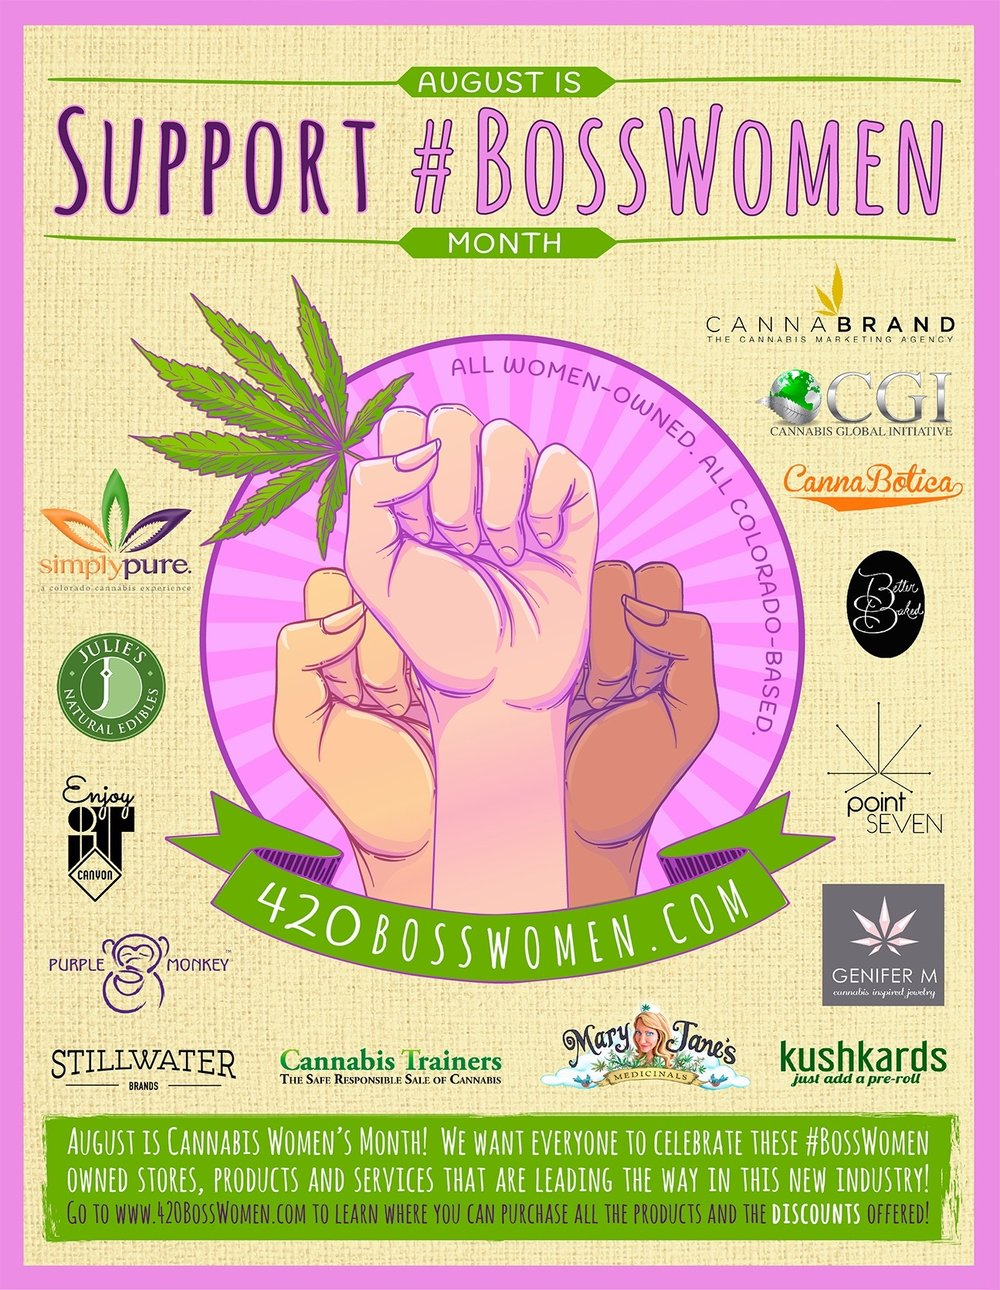 Boss Women -Genifer M Jewelry- Cannabis Inspired Jewelry - Gold Cannabis Penants